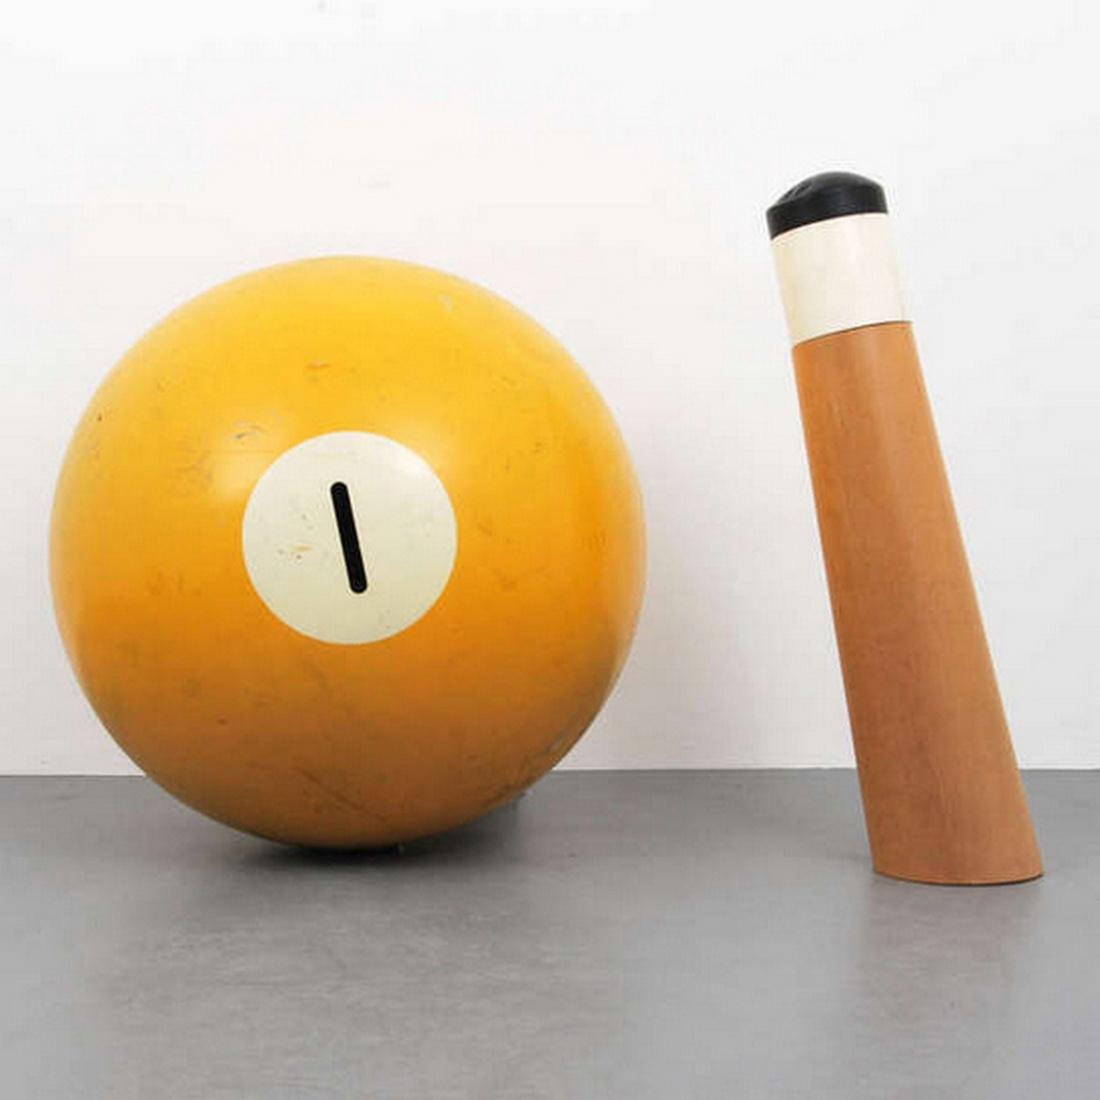 Large Pop Art Billiard Ball & Cue Stick Sculpture